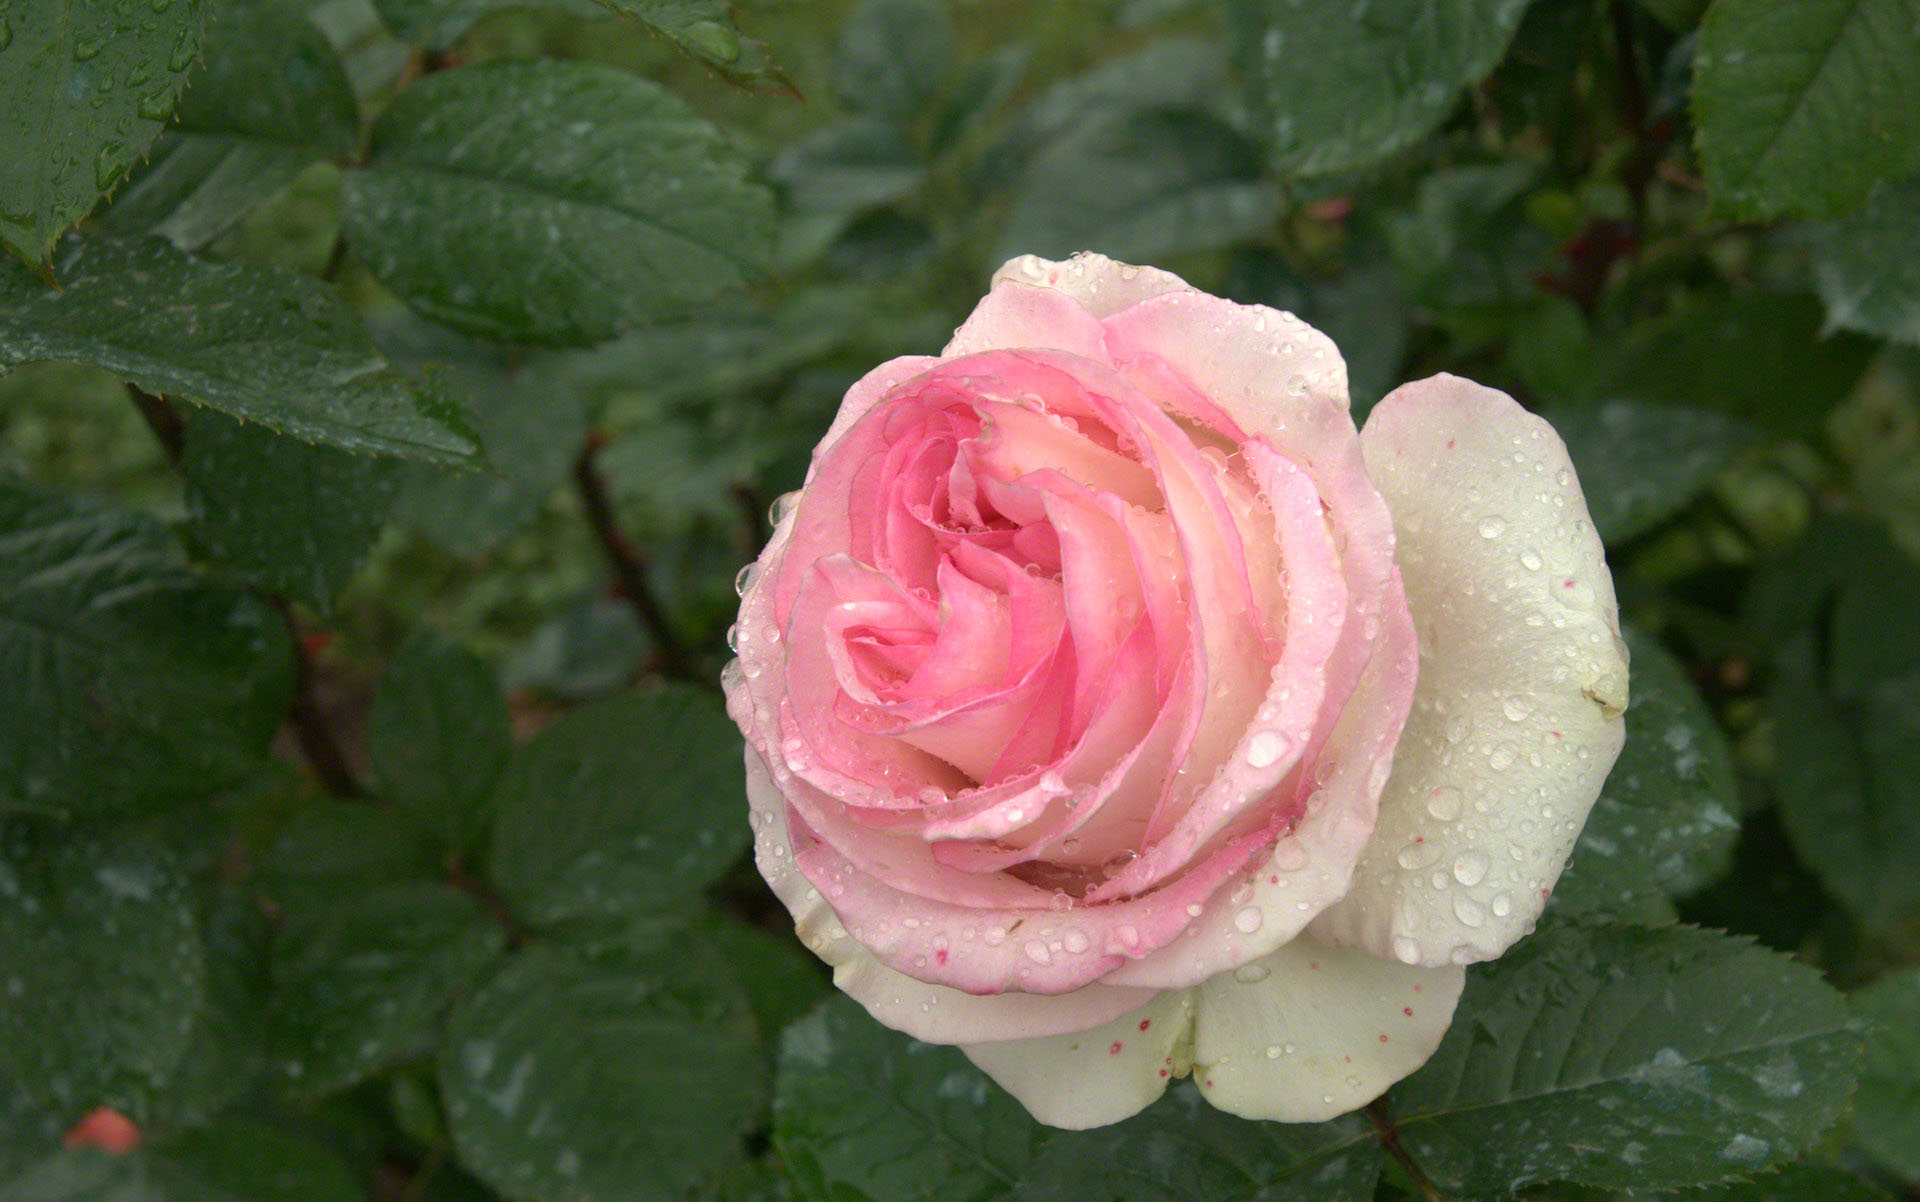 Raindrop rose wallpaper altavistaventures Image collections